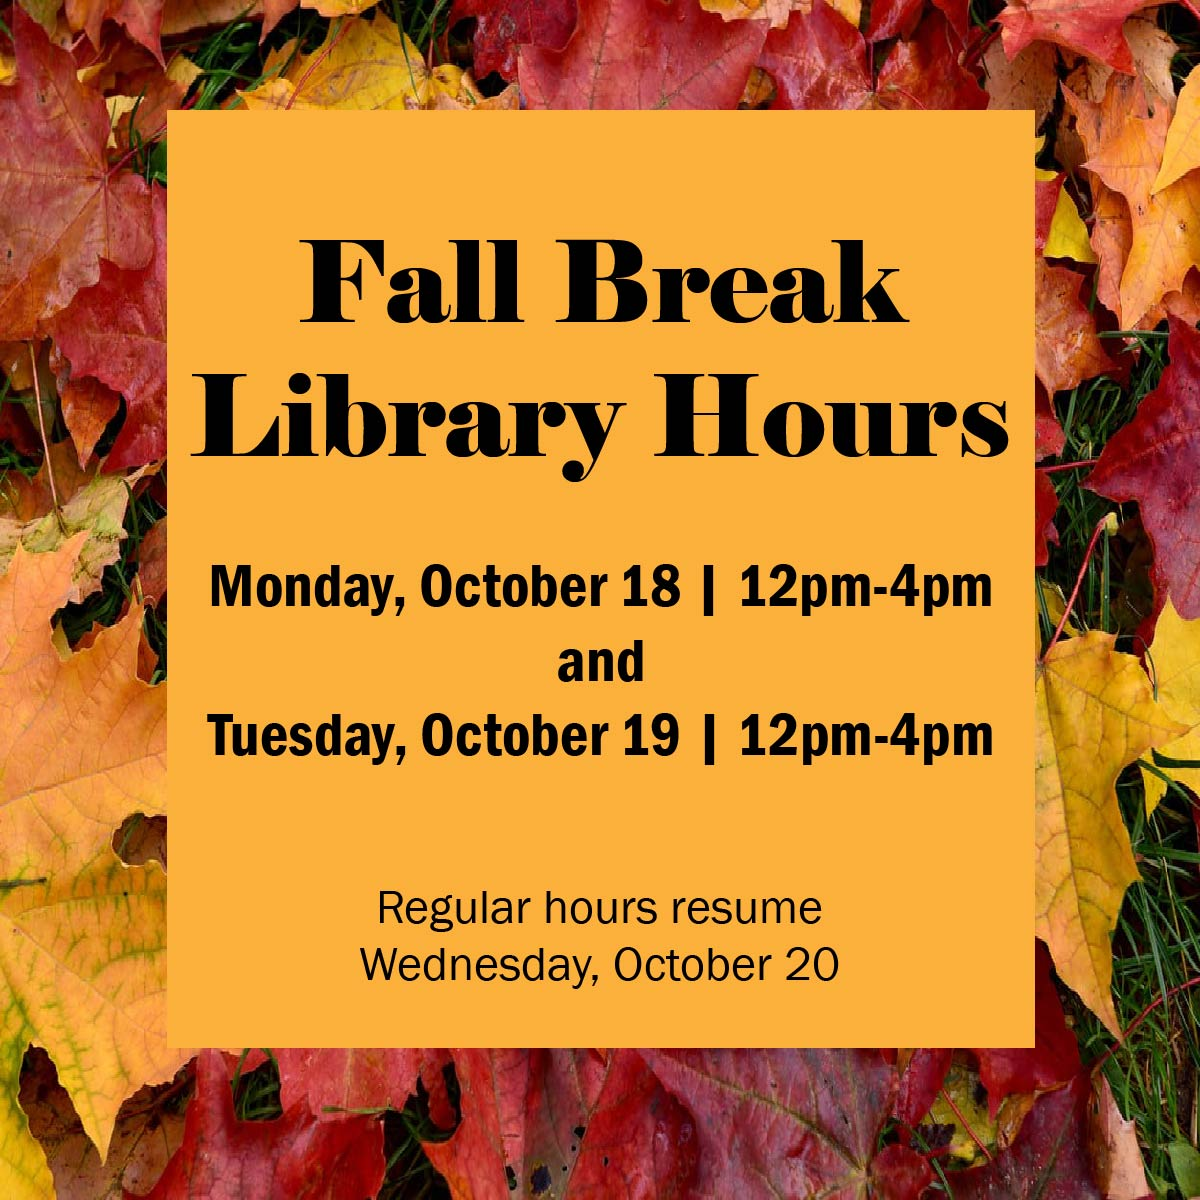 Fall Break Hours October 18 12pm-4pm and October 19 12pm-4pm